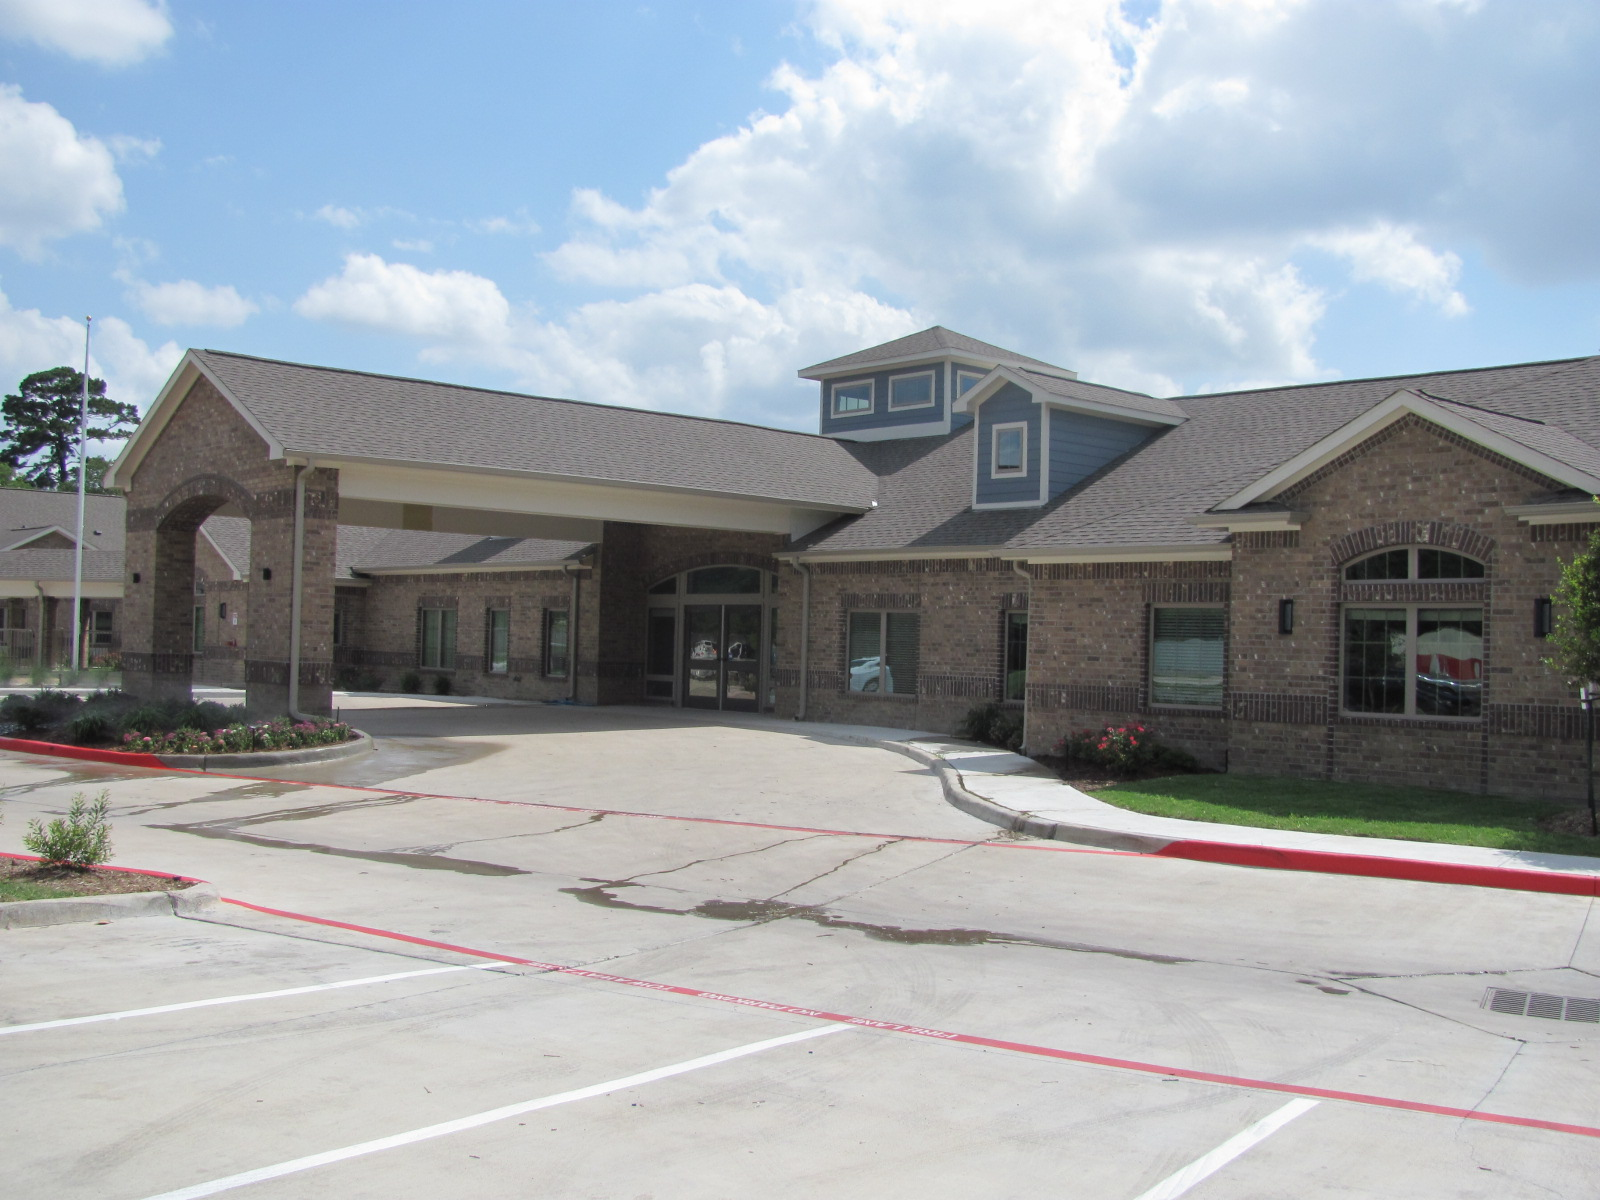 Highland Park Nursing Care & Rehab_Main entry.JPG